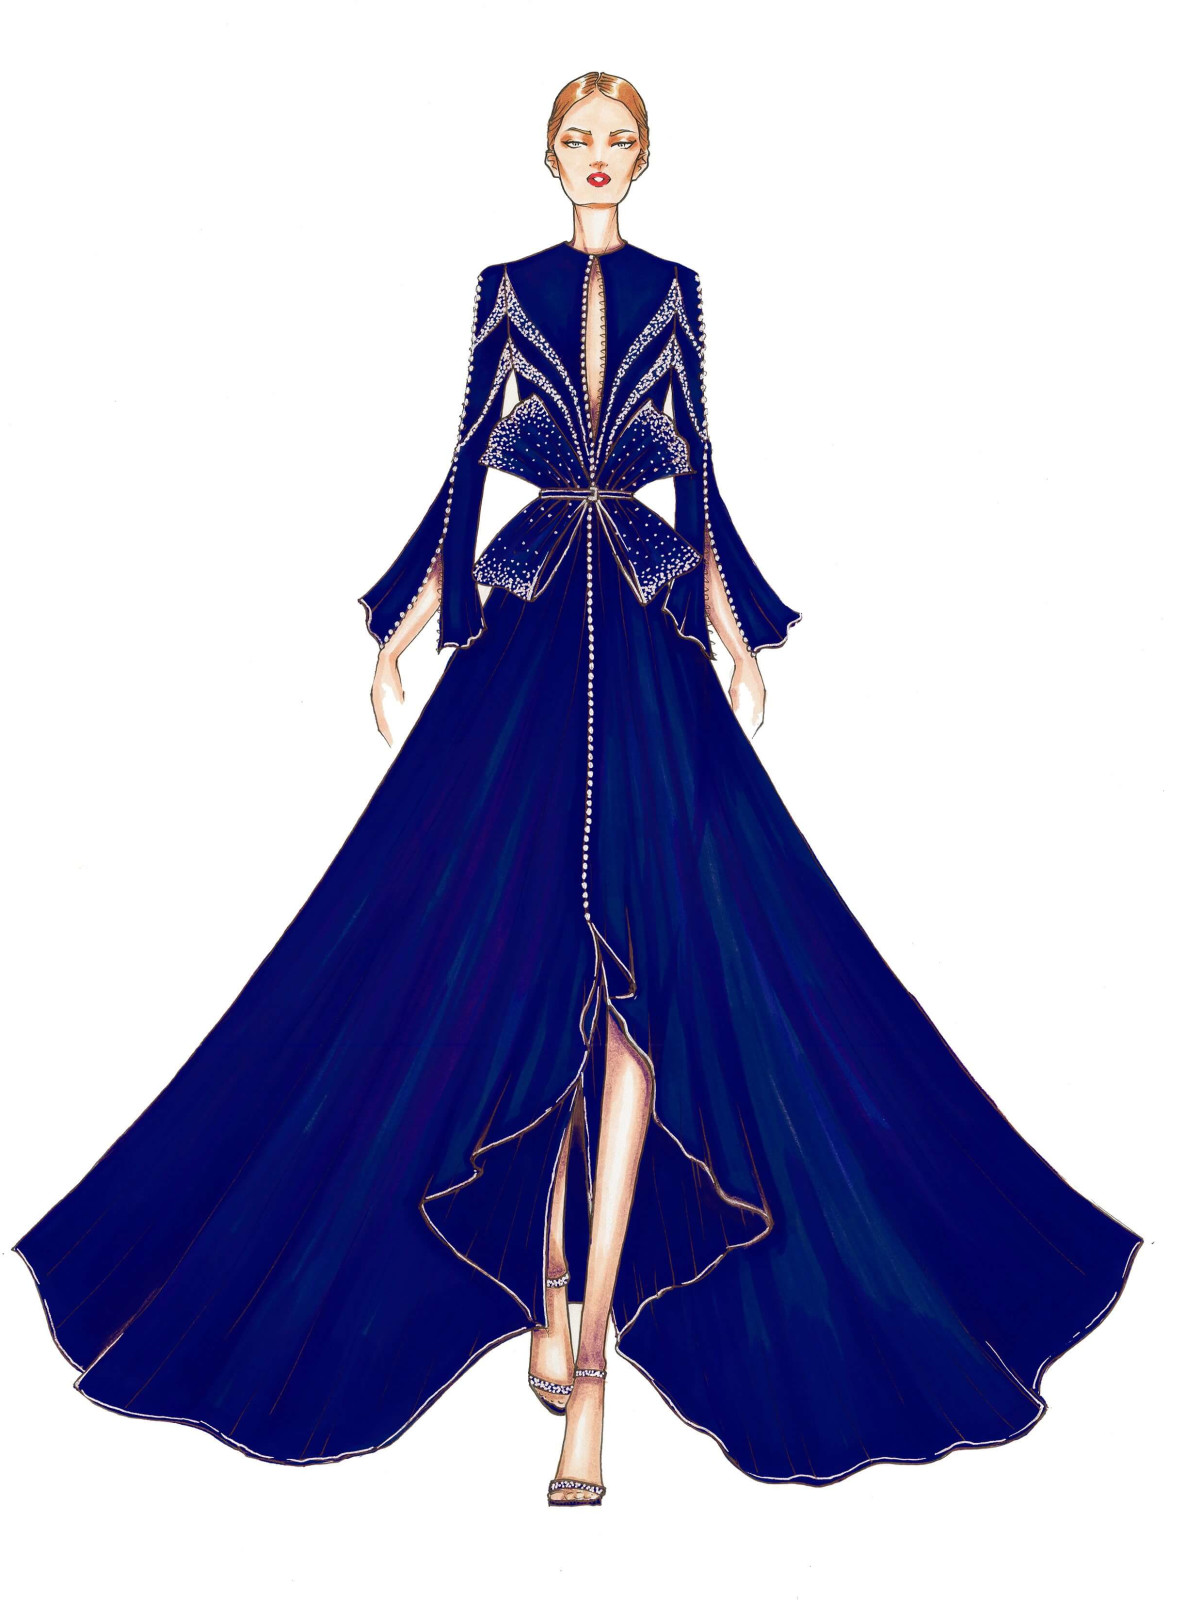 Oday Shakar designer inspiration sketch fall 2017